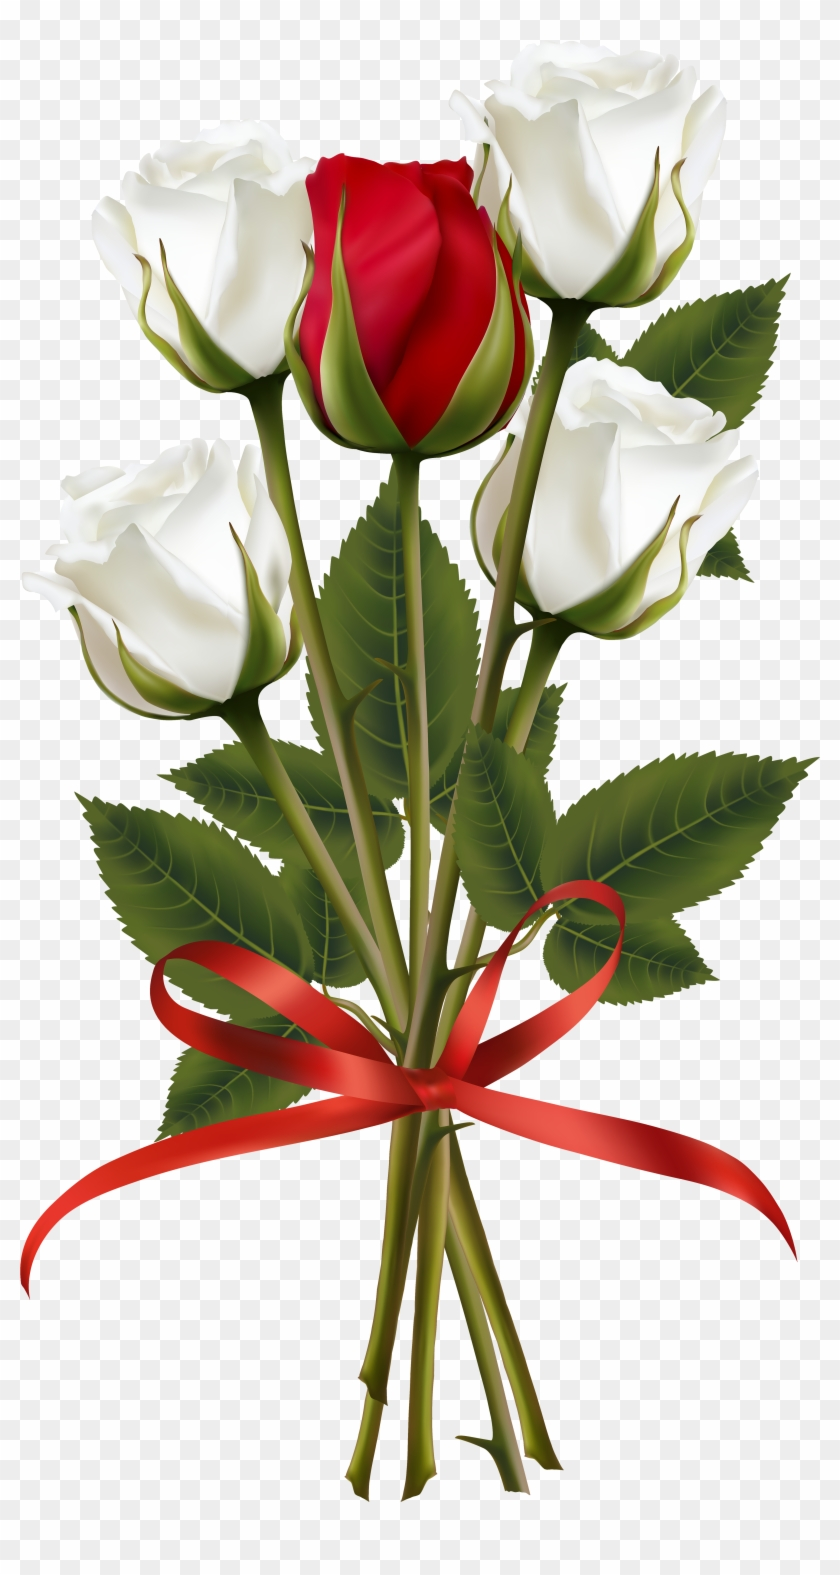 White and red rose bouquet transparent png clip art red and white white and red rose bouquet transparent png clip art red and white rose png izmirmasajfo